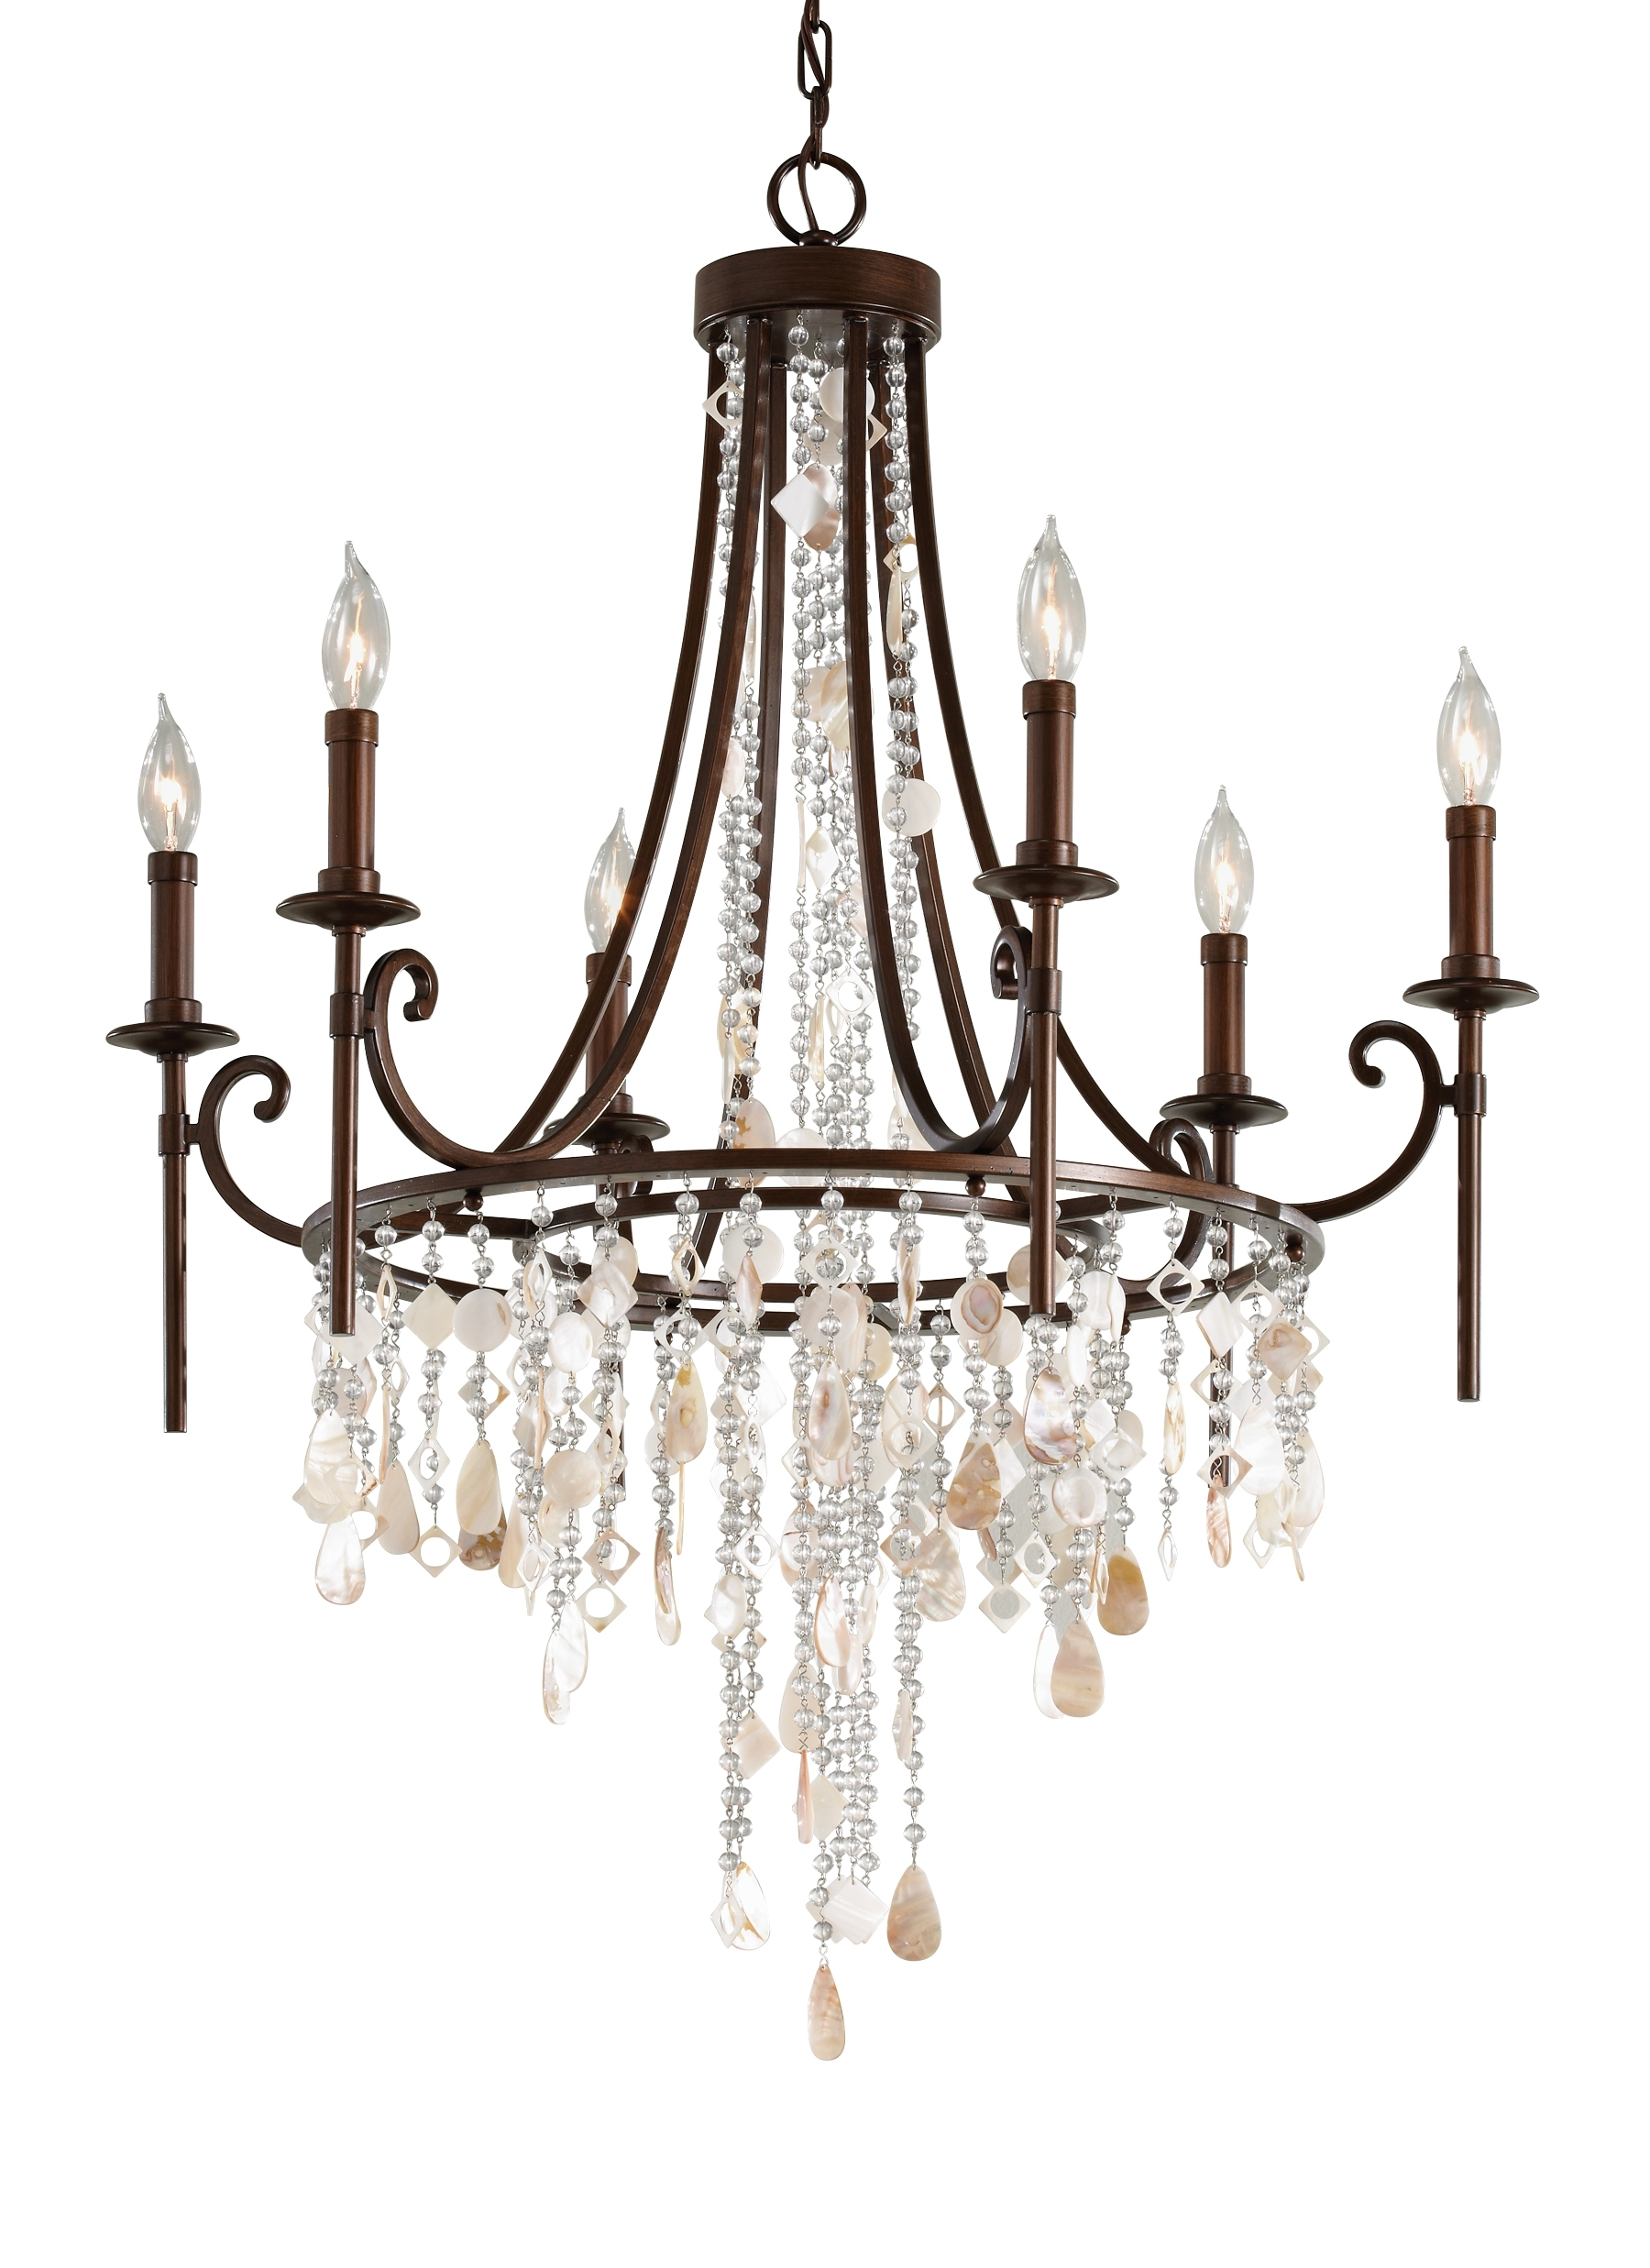 F2660/6Htbz,6 – Light Single Tier Chandelier,heritage Bronze Throughout Most Recently Released Feiss Chandeliers (View 15 of 15)